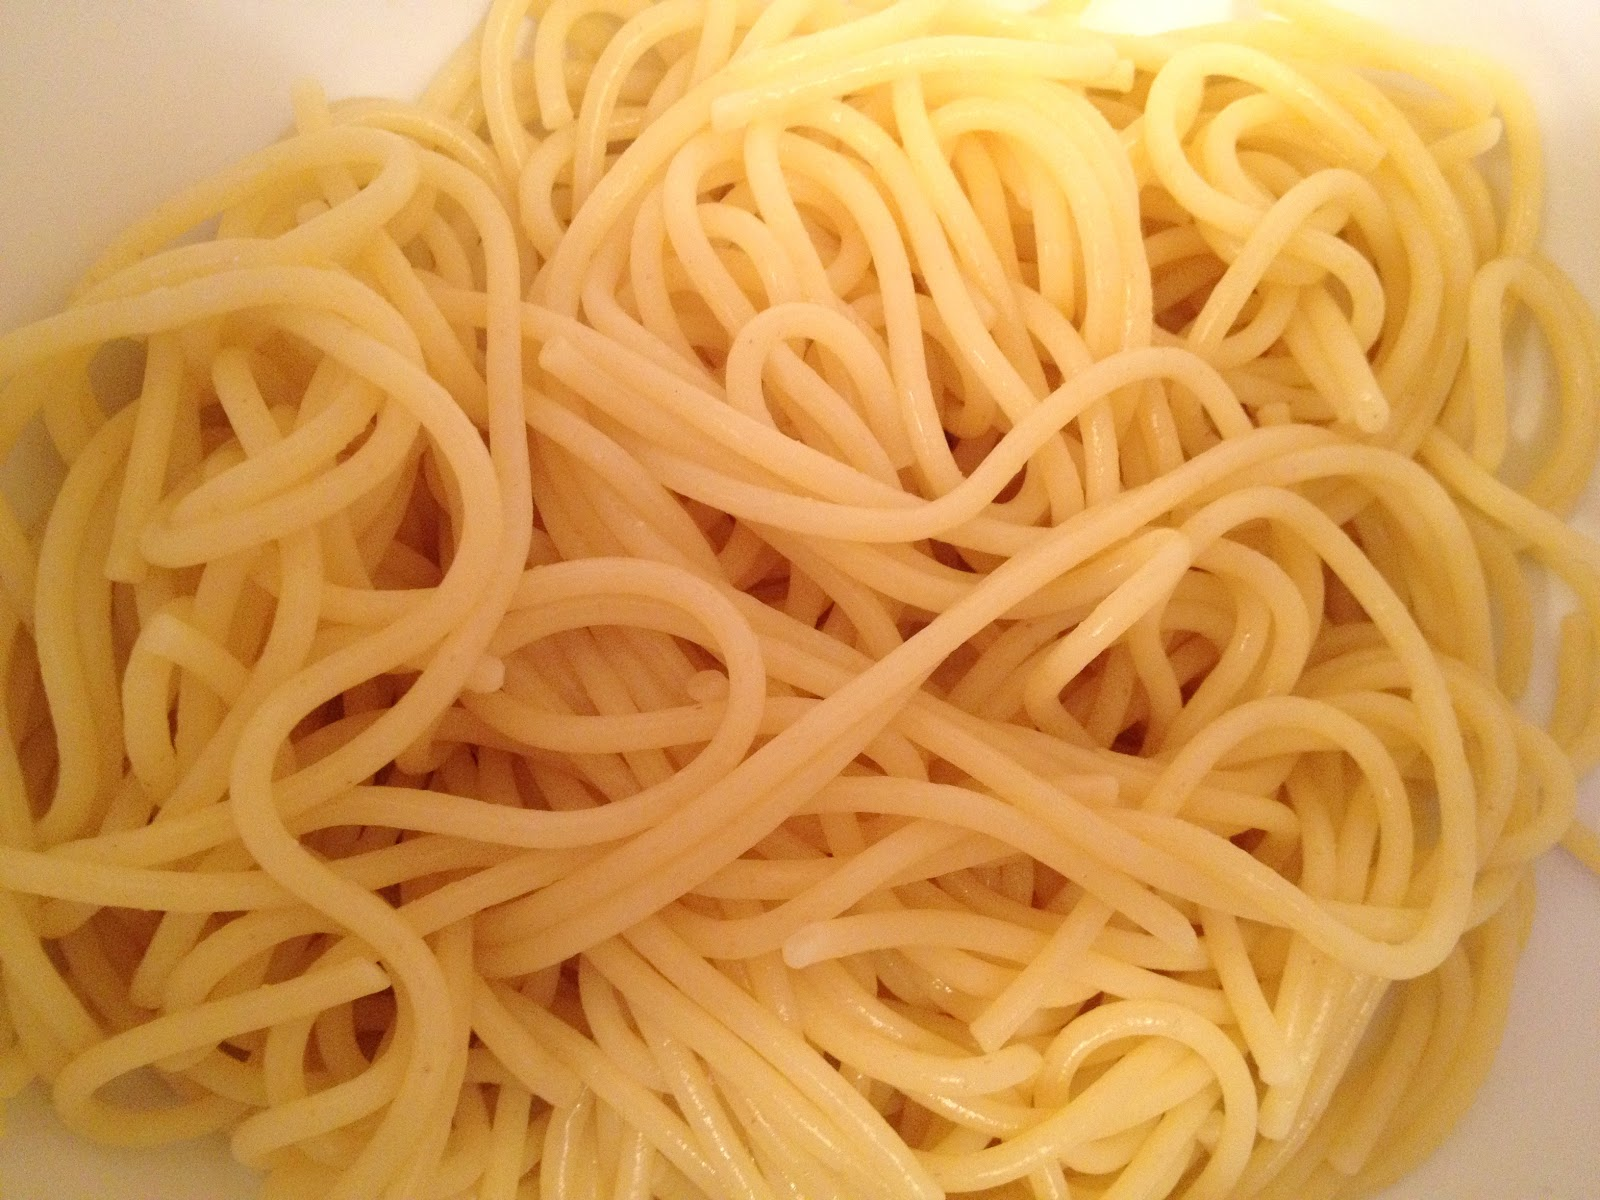 Difference between US Spaghetti and European Spaghetti bolognese?   SpaceBattles Forums